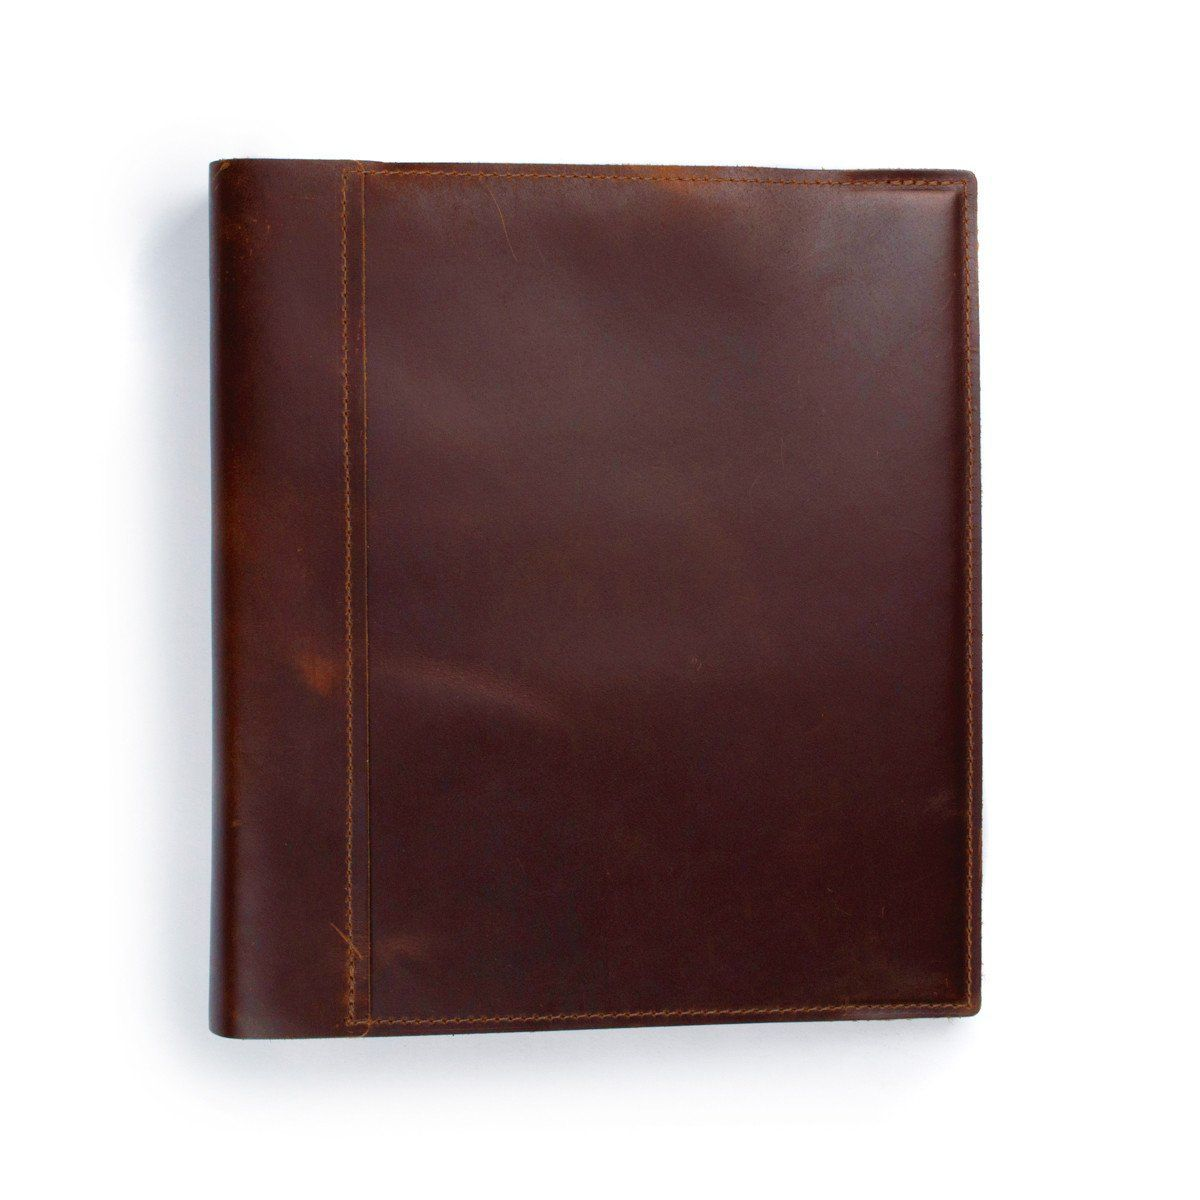 Leather 1.5 Inch 3-Ring Binder Cover